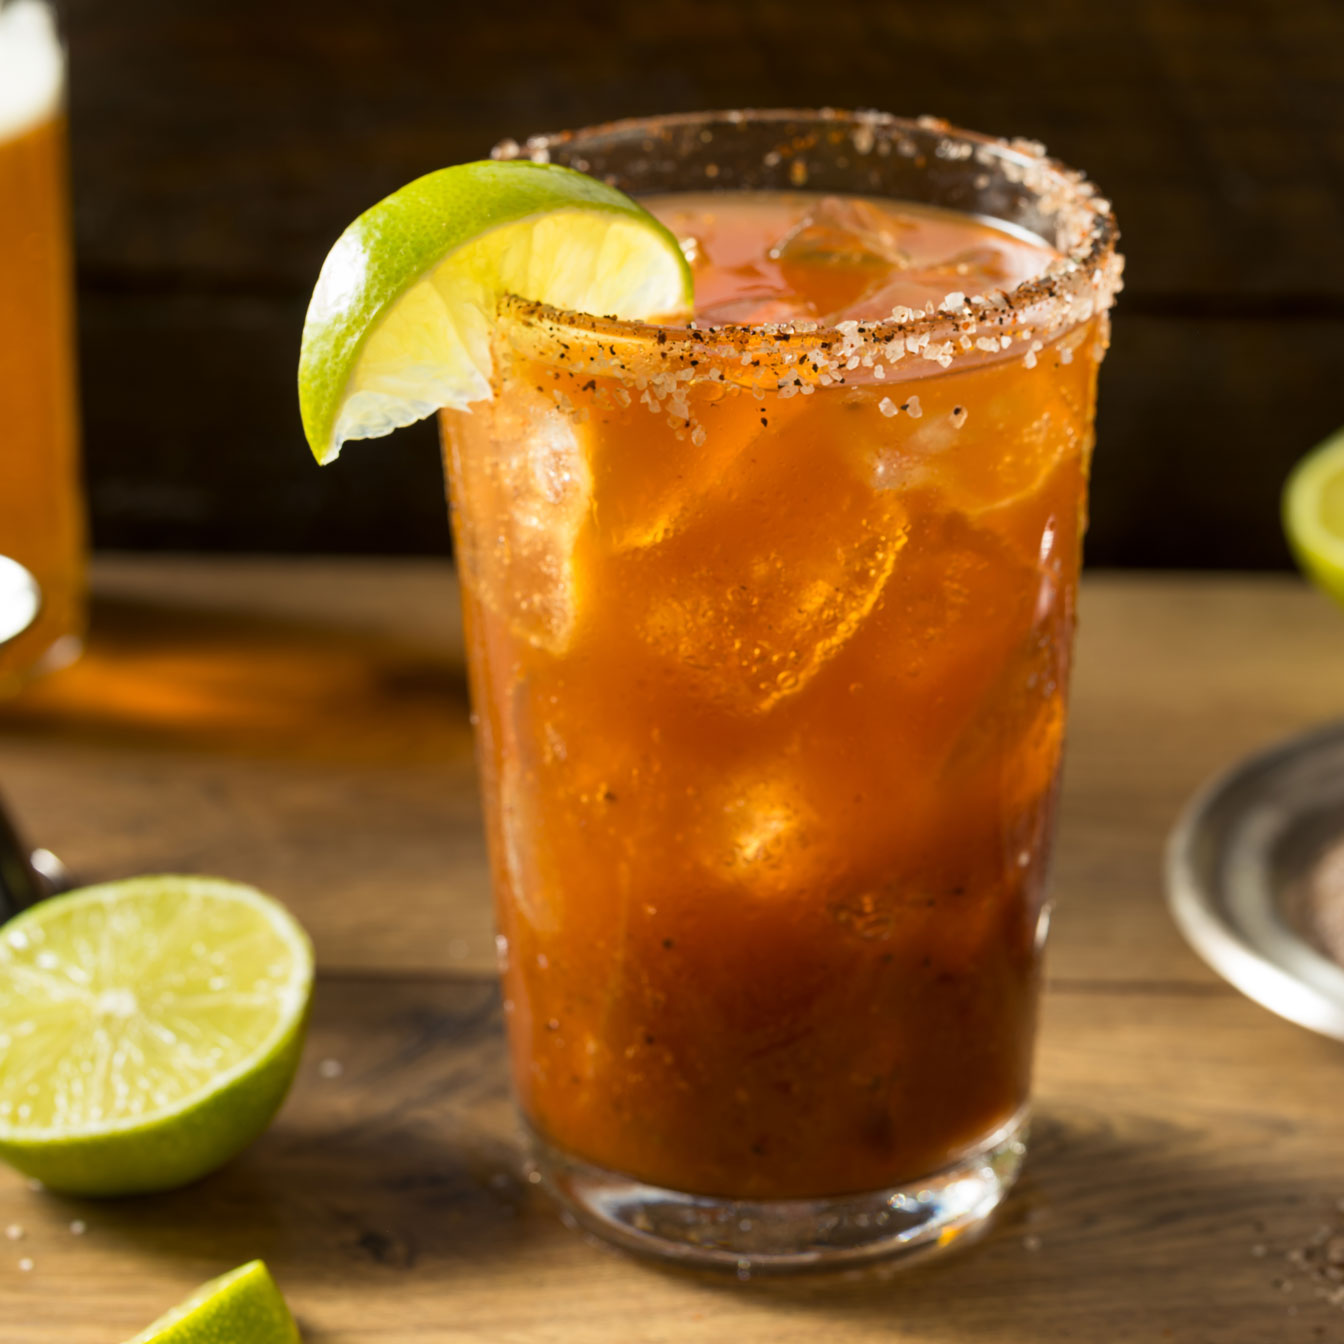 homemade-mexican-michelada-beer-cocktail-D8LZ62H